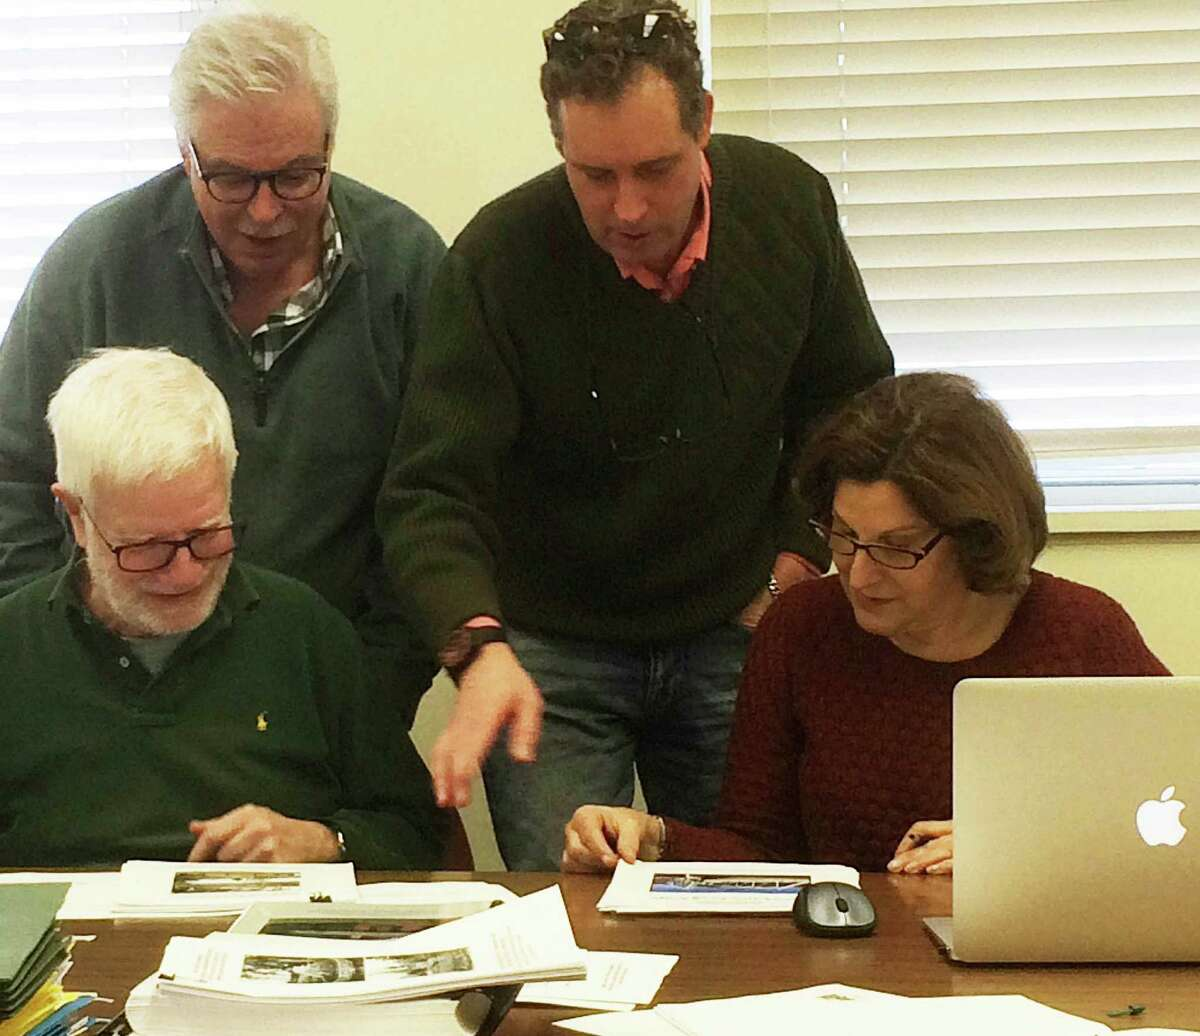 Members of the Saugatuck Swing Bridge Study Subcommittee -- Robert Weingarten, Peter Fullbright, Morley Boyd and Janet Rubel look at pictures of the span -- met to discuss finishing touches on their report that wiill recommend designating the span a local historic landmark.